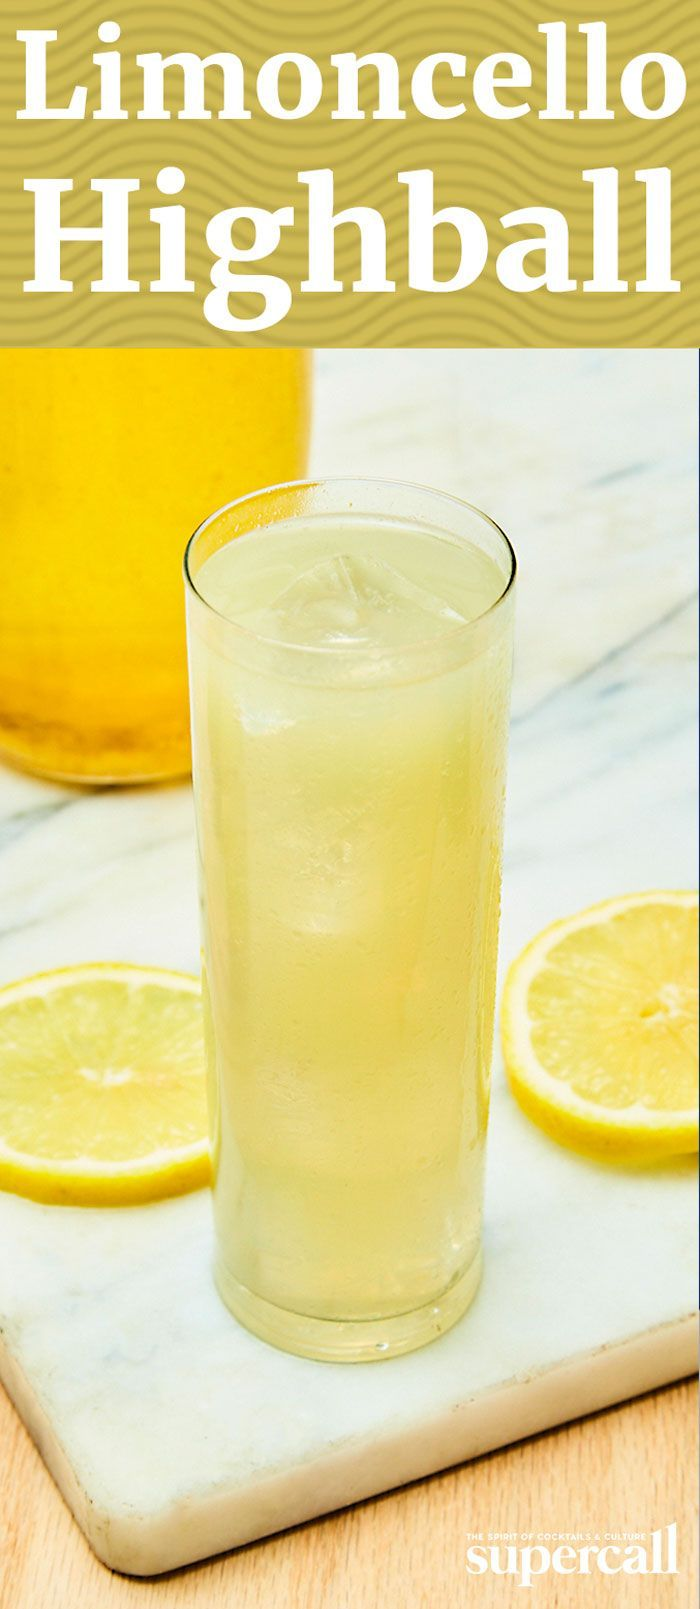 Forget the Vodka Soda or the Whisky Soda, this easy-to-make Highball is your new spritzy go-to. While it does call for more than two ingredients, it's just as easy to make as its tall, bubbly brethren—and it has much more to offer when it comes to pure flavor. It's made with limoncello—a bittersweet Italian lemon liqueur—instead of a straight spirit, along with orange bitters and absinthe, which lend the cocktail depth and a tinge of bitterness. #cocktailrecipes